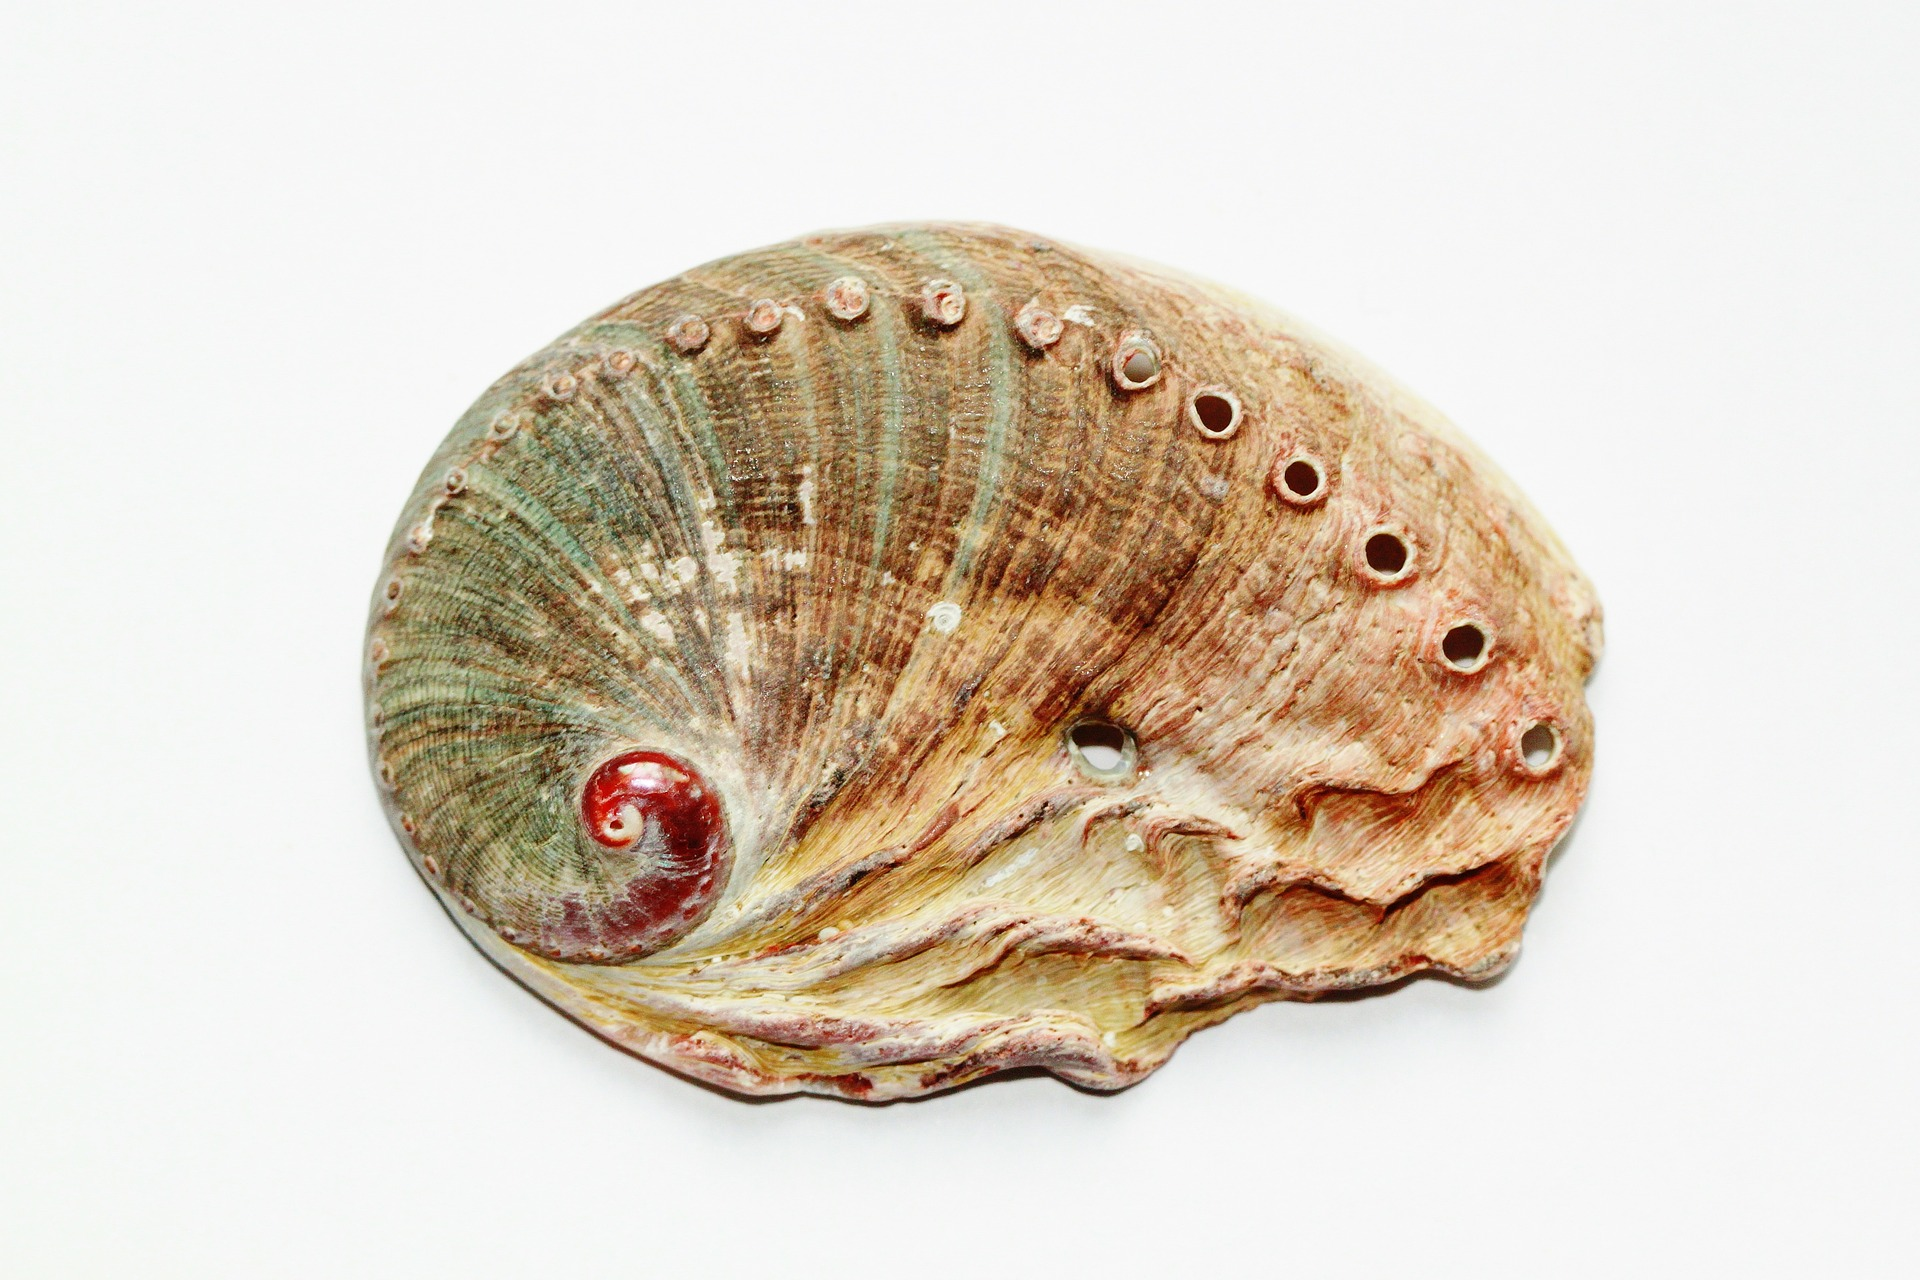 Abalone conservation to feature on Royal Tour of SA